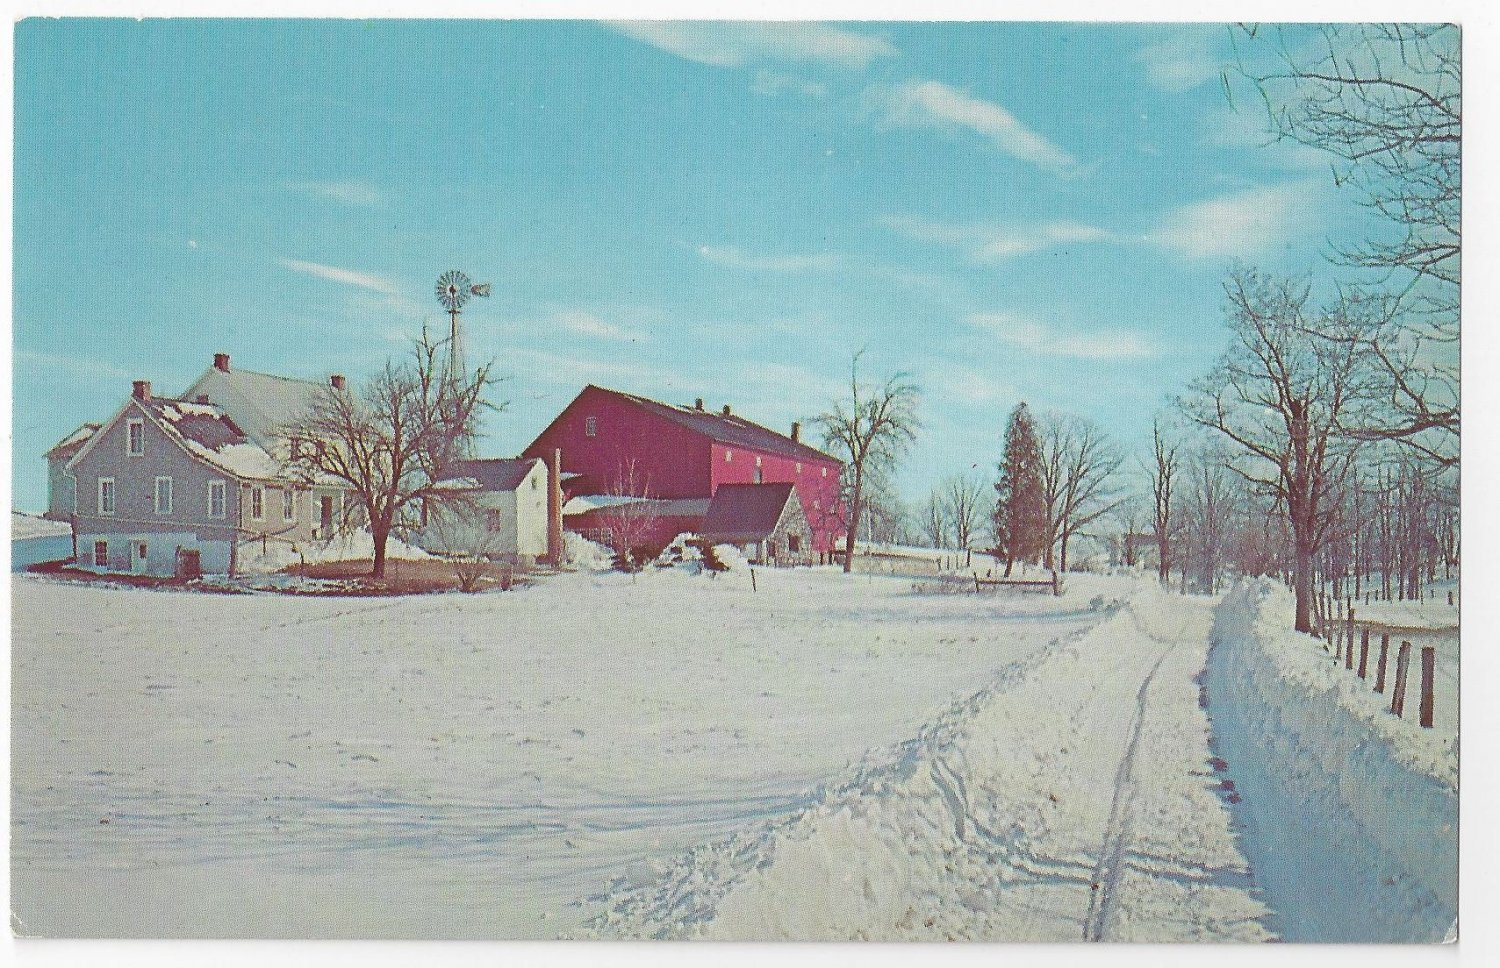 Amish Pennsylvania Dutch Farm Winter Snow Vintage Postcard